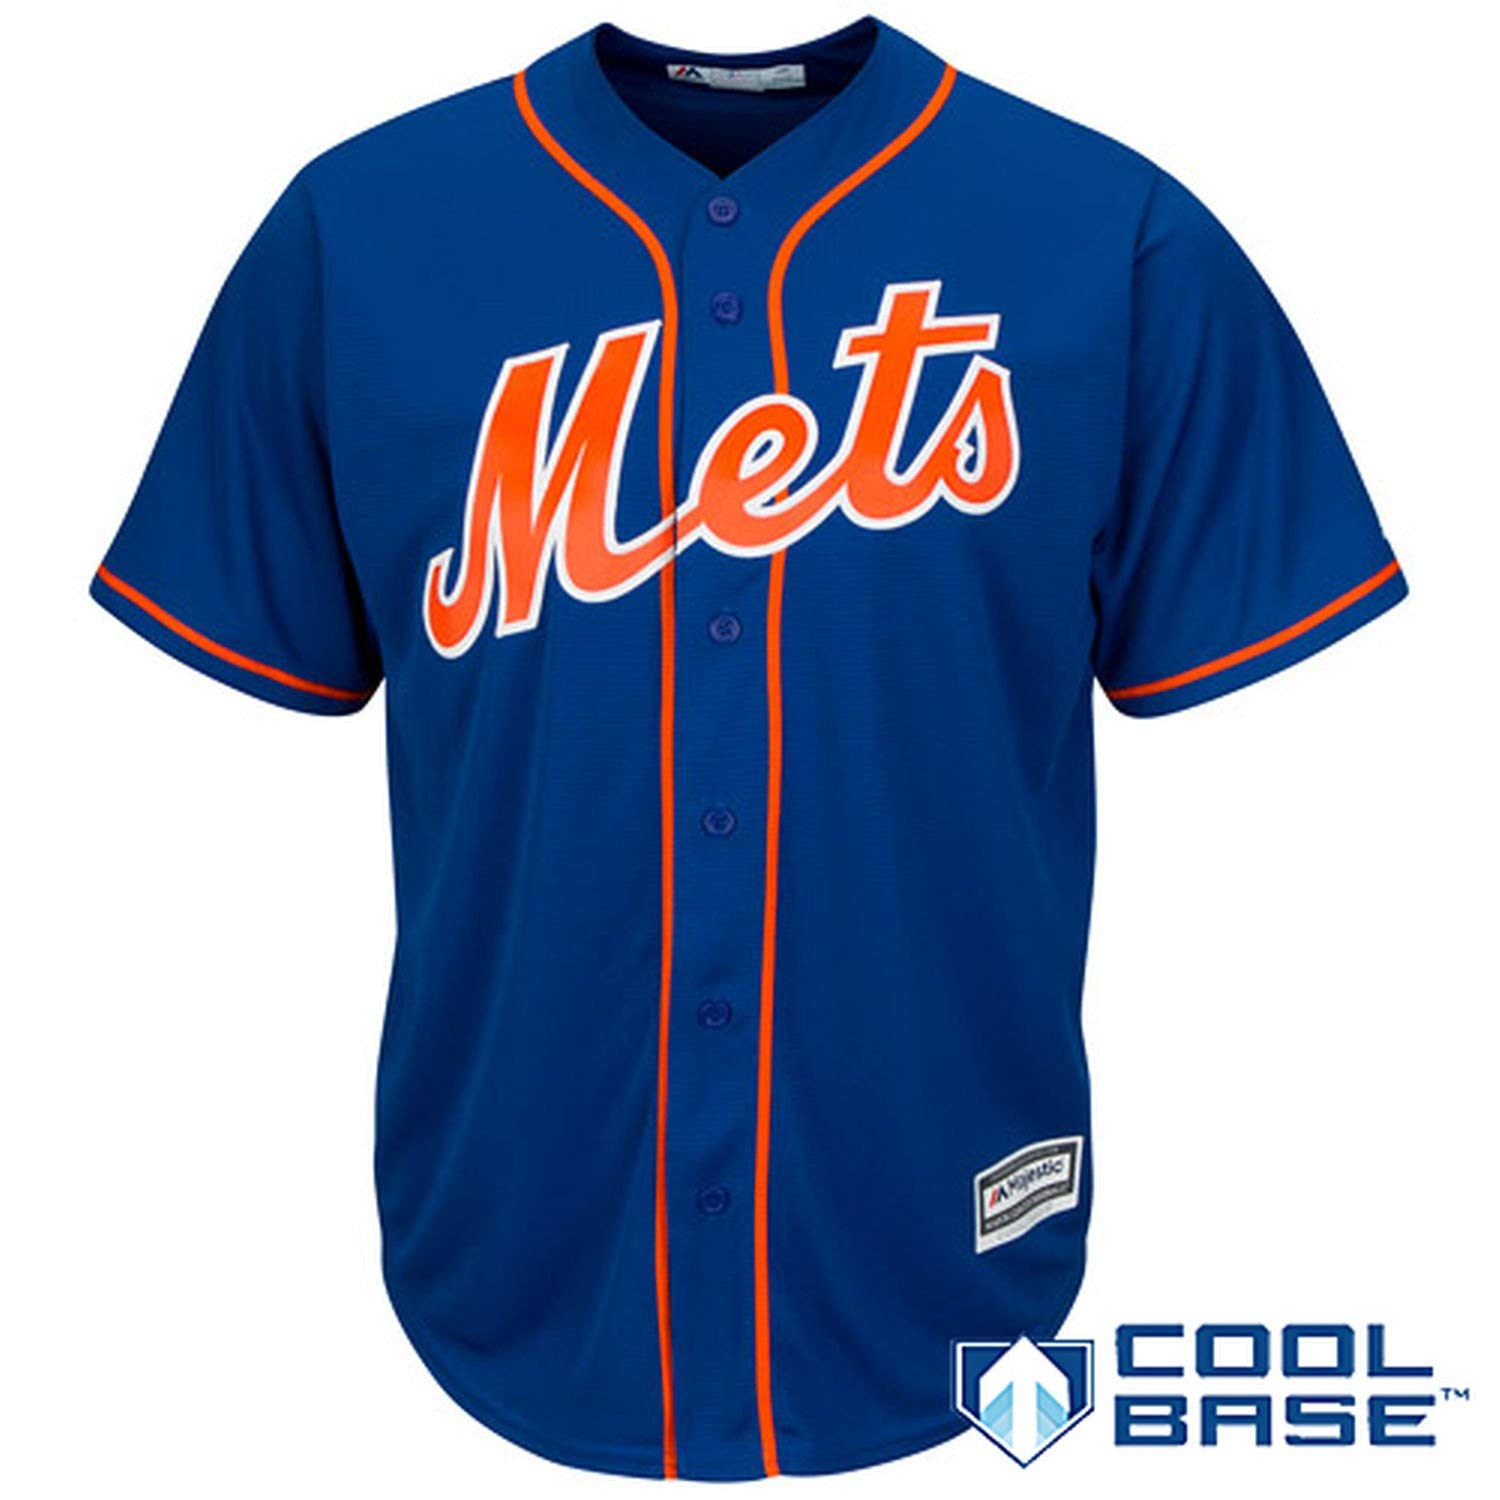 131bbd20e Get Quotations · Outerstuff New York Mets Blank Blue Youth Cool Base  Alternate Replica Jersey